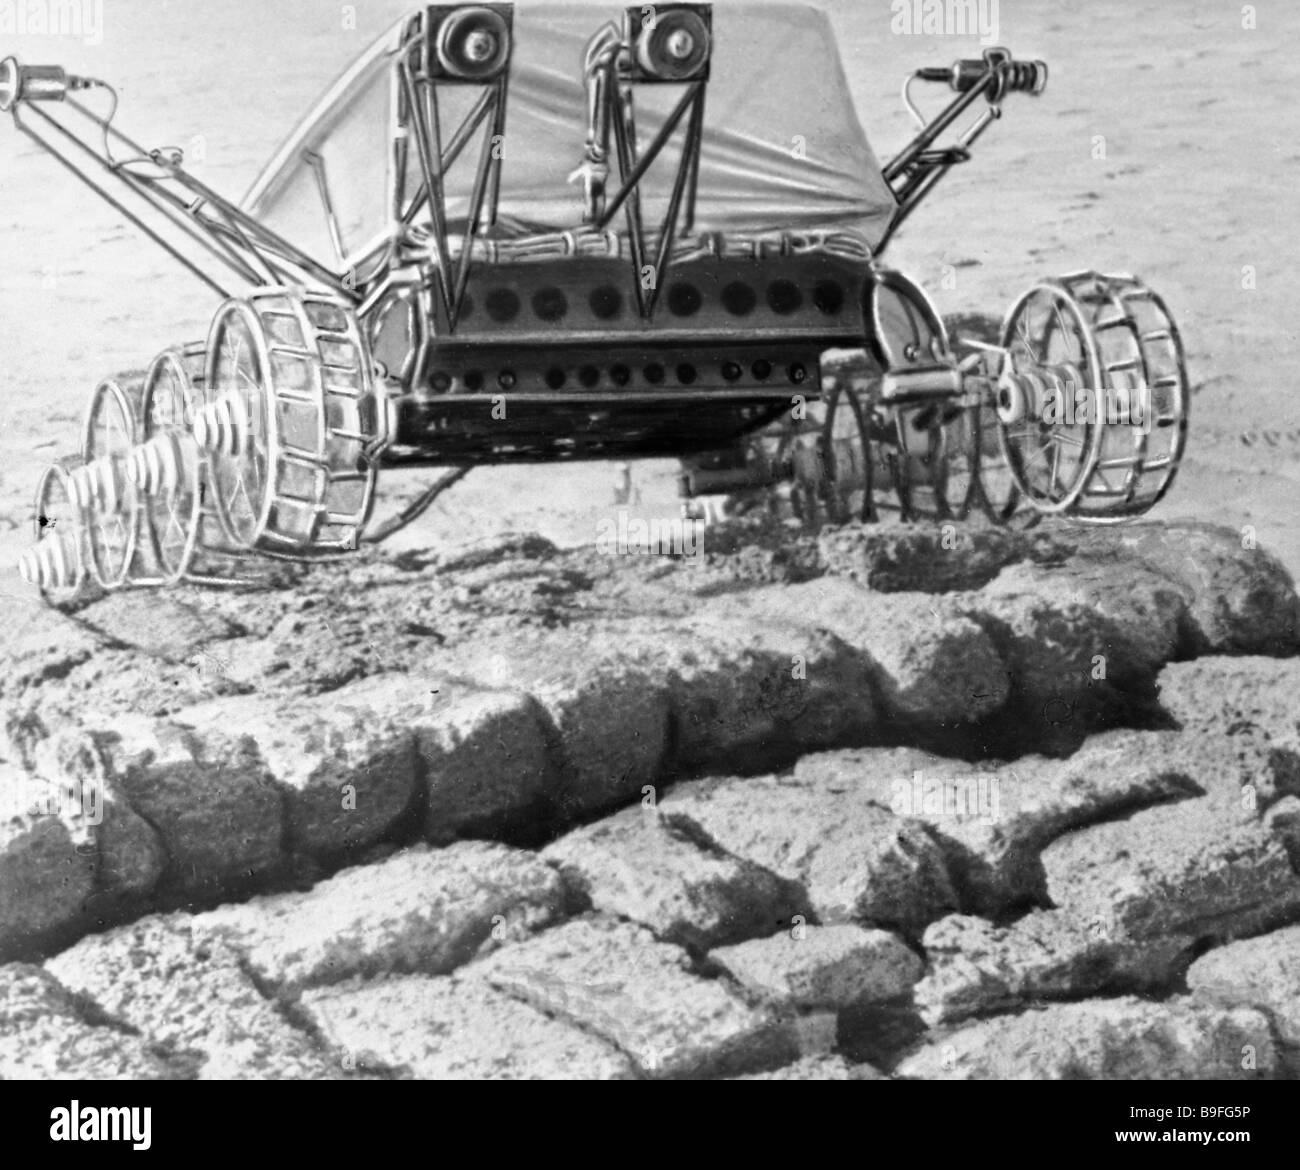 Testing the undercarriage of the lunar rover - Stock Image